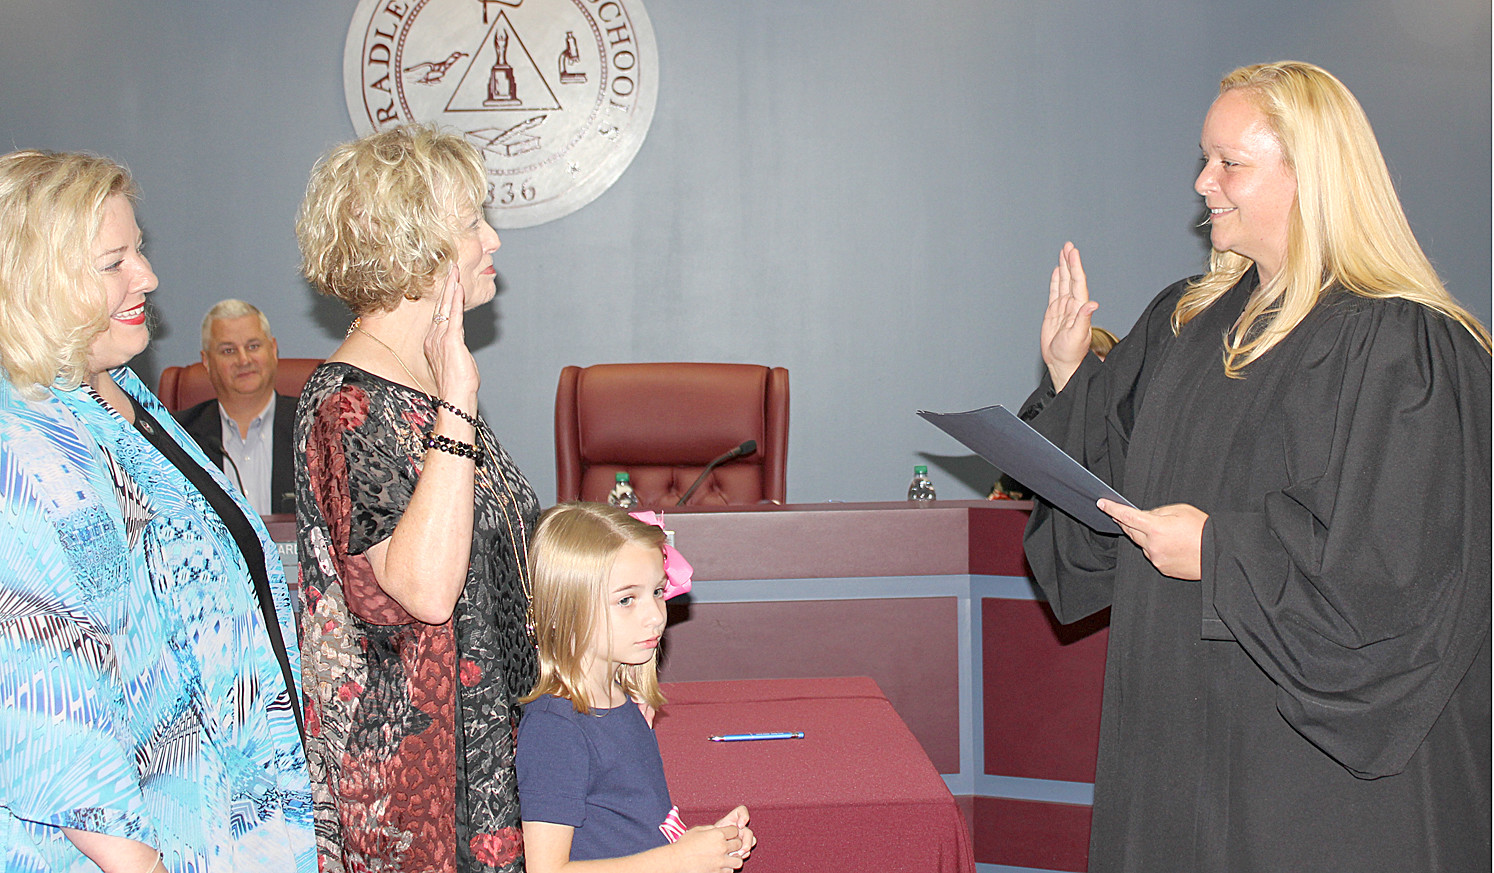 VICKI BEATY, Bradley County Board of Education member for District 2, is joined by daughter Emily Beaty and granddaughter Sophia as she takes the Oath of Office with Magistrate Ashley Gaither.